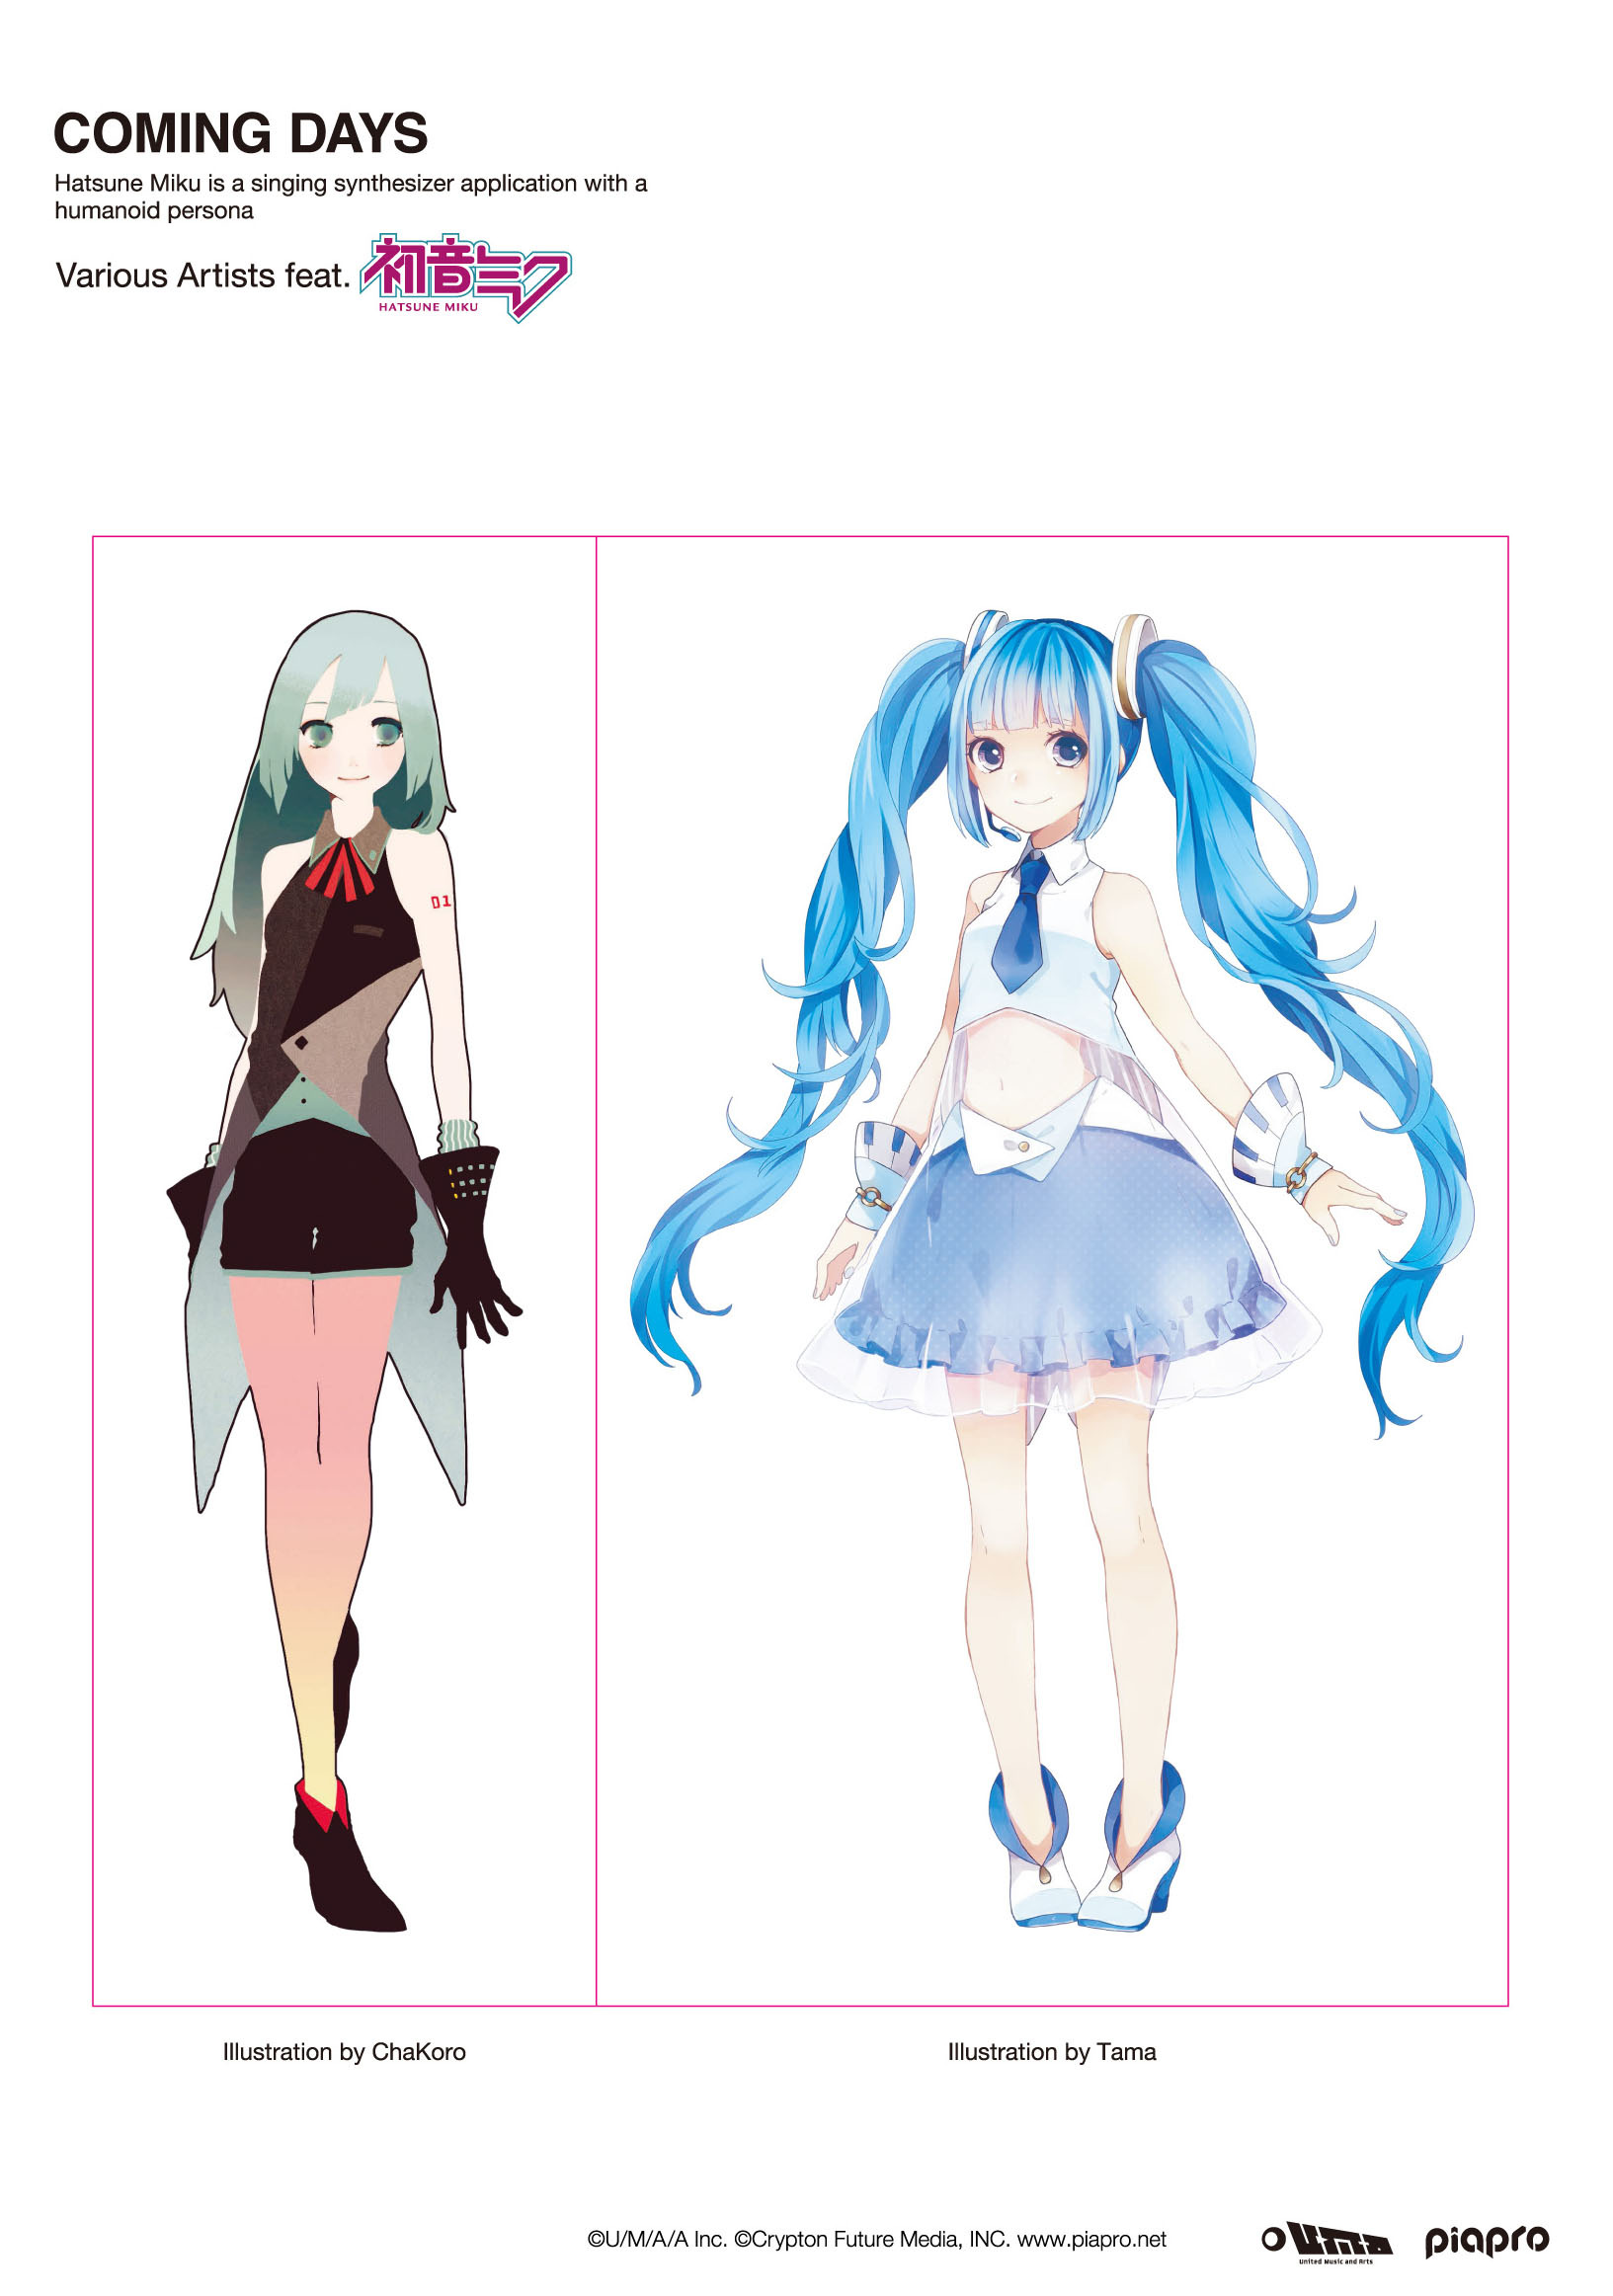 COMING DAYS / Various Artists feat. 初音ミク - 画像3